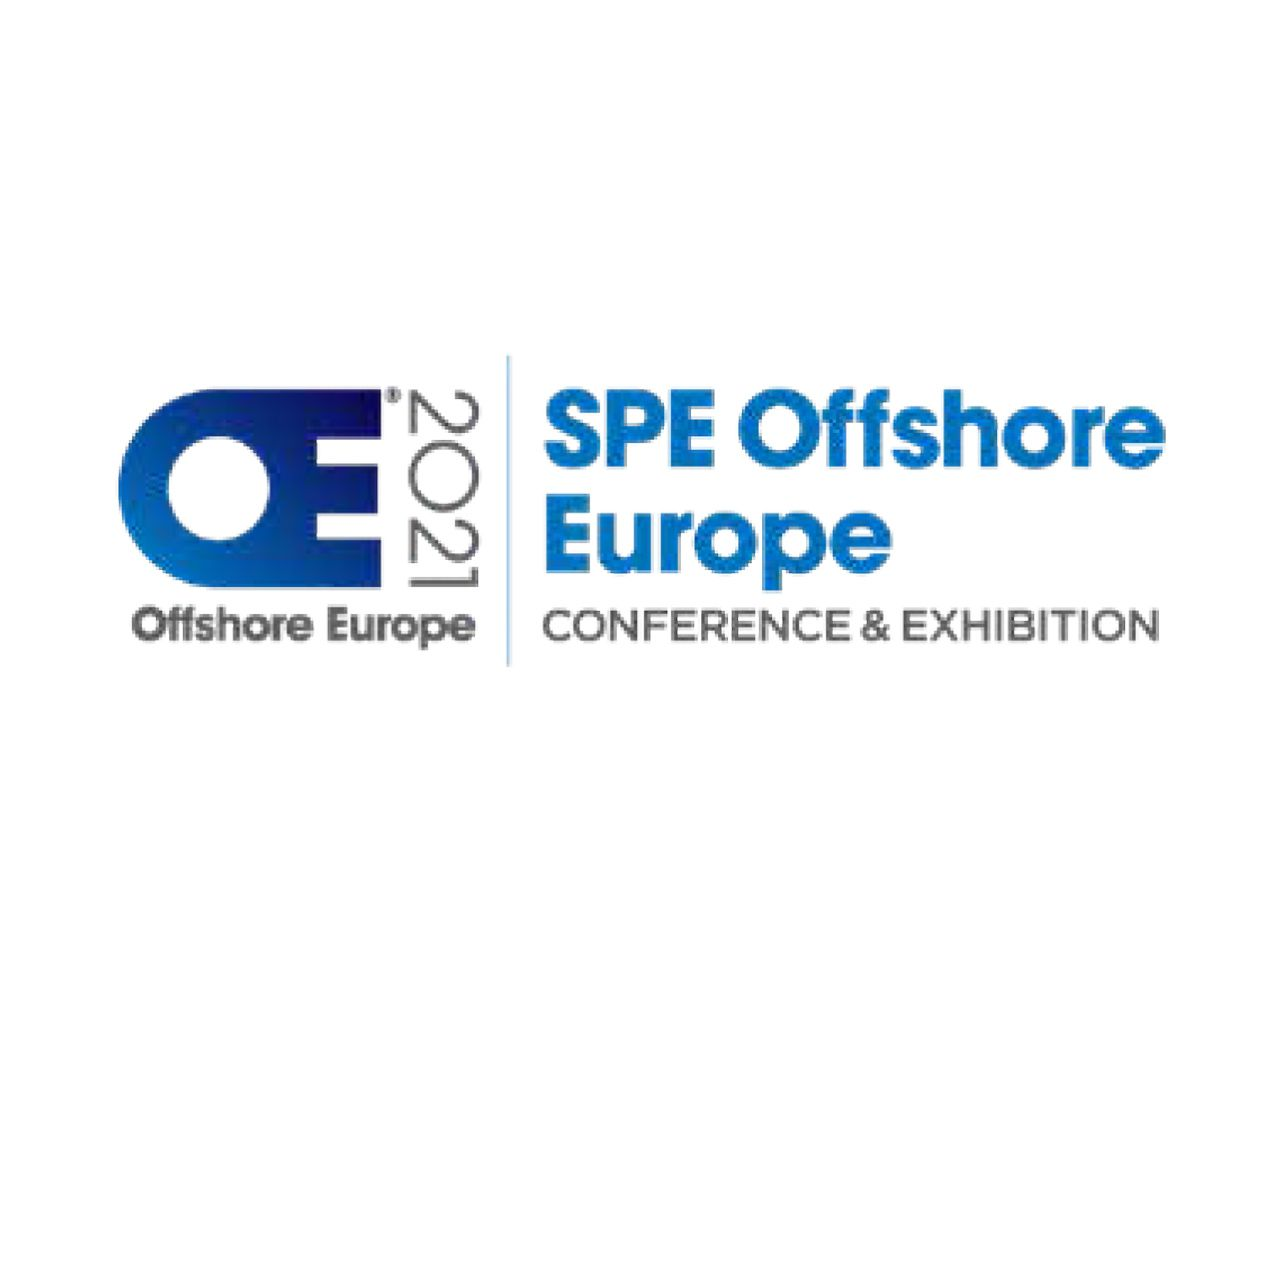 //www.asapathens.gr/wp-content/uploads/2020/09/SPE-OFFSHORE_1280X1280.jpg